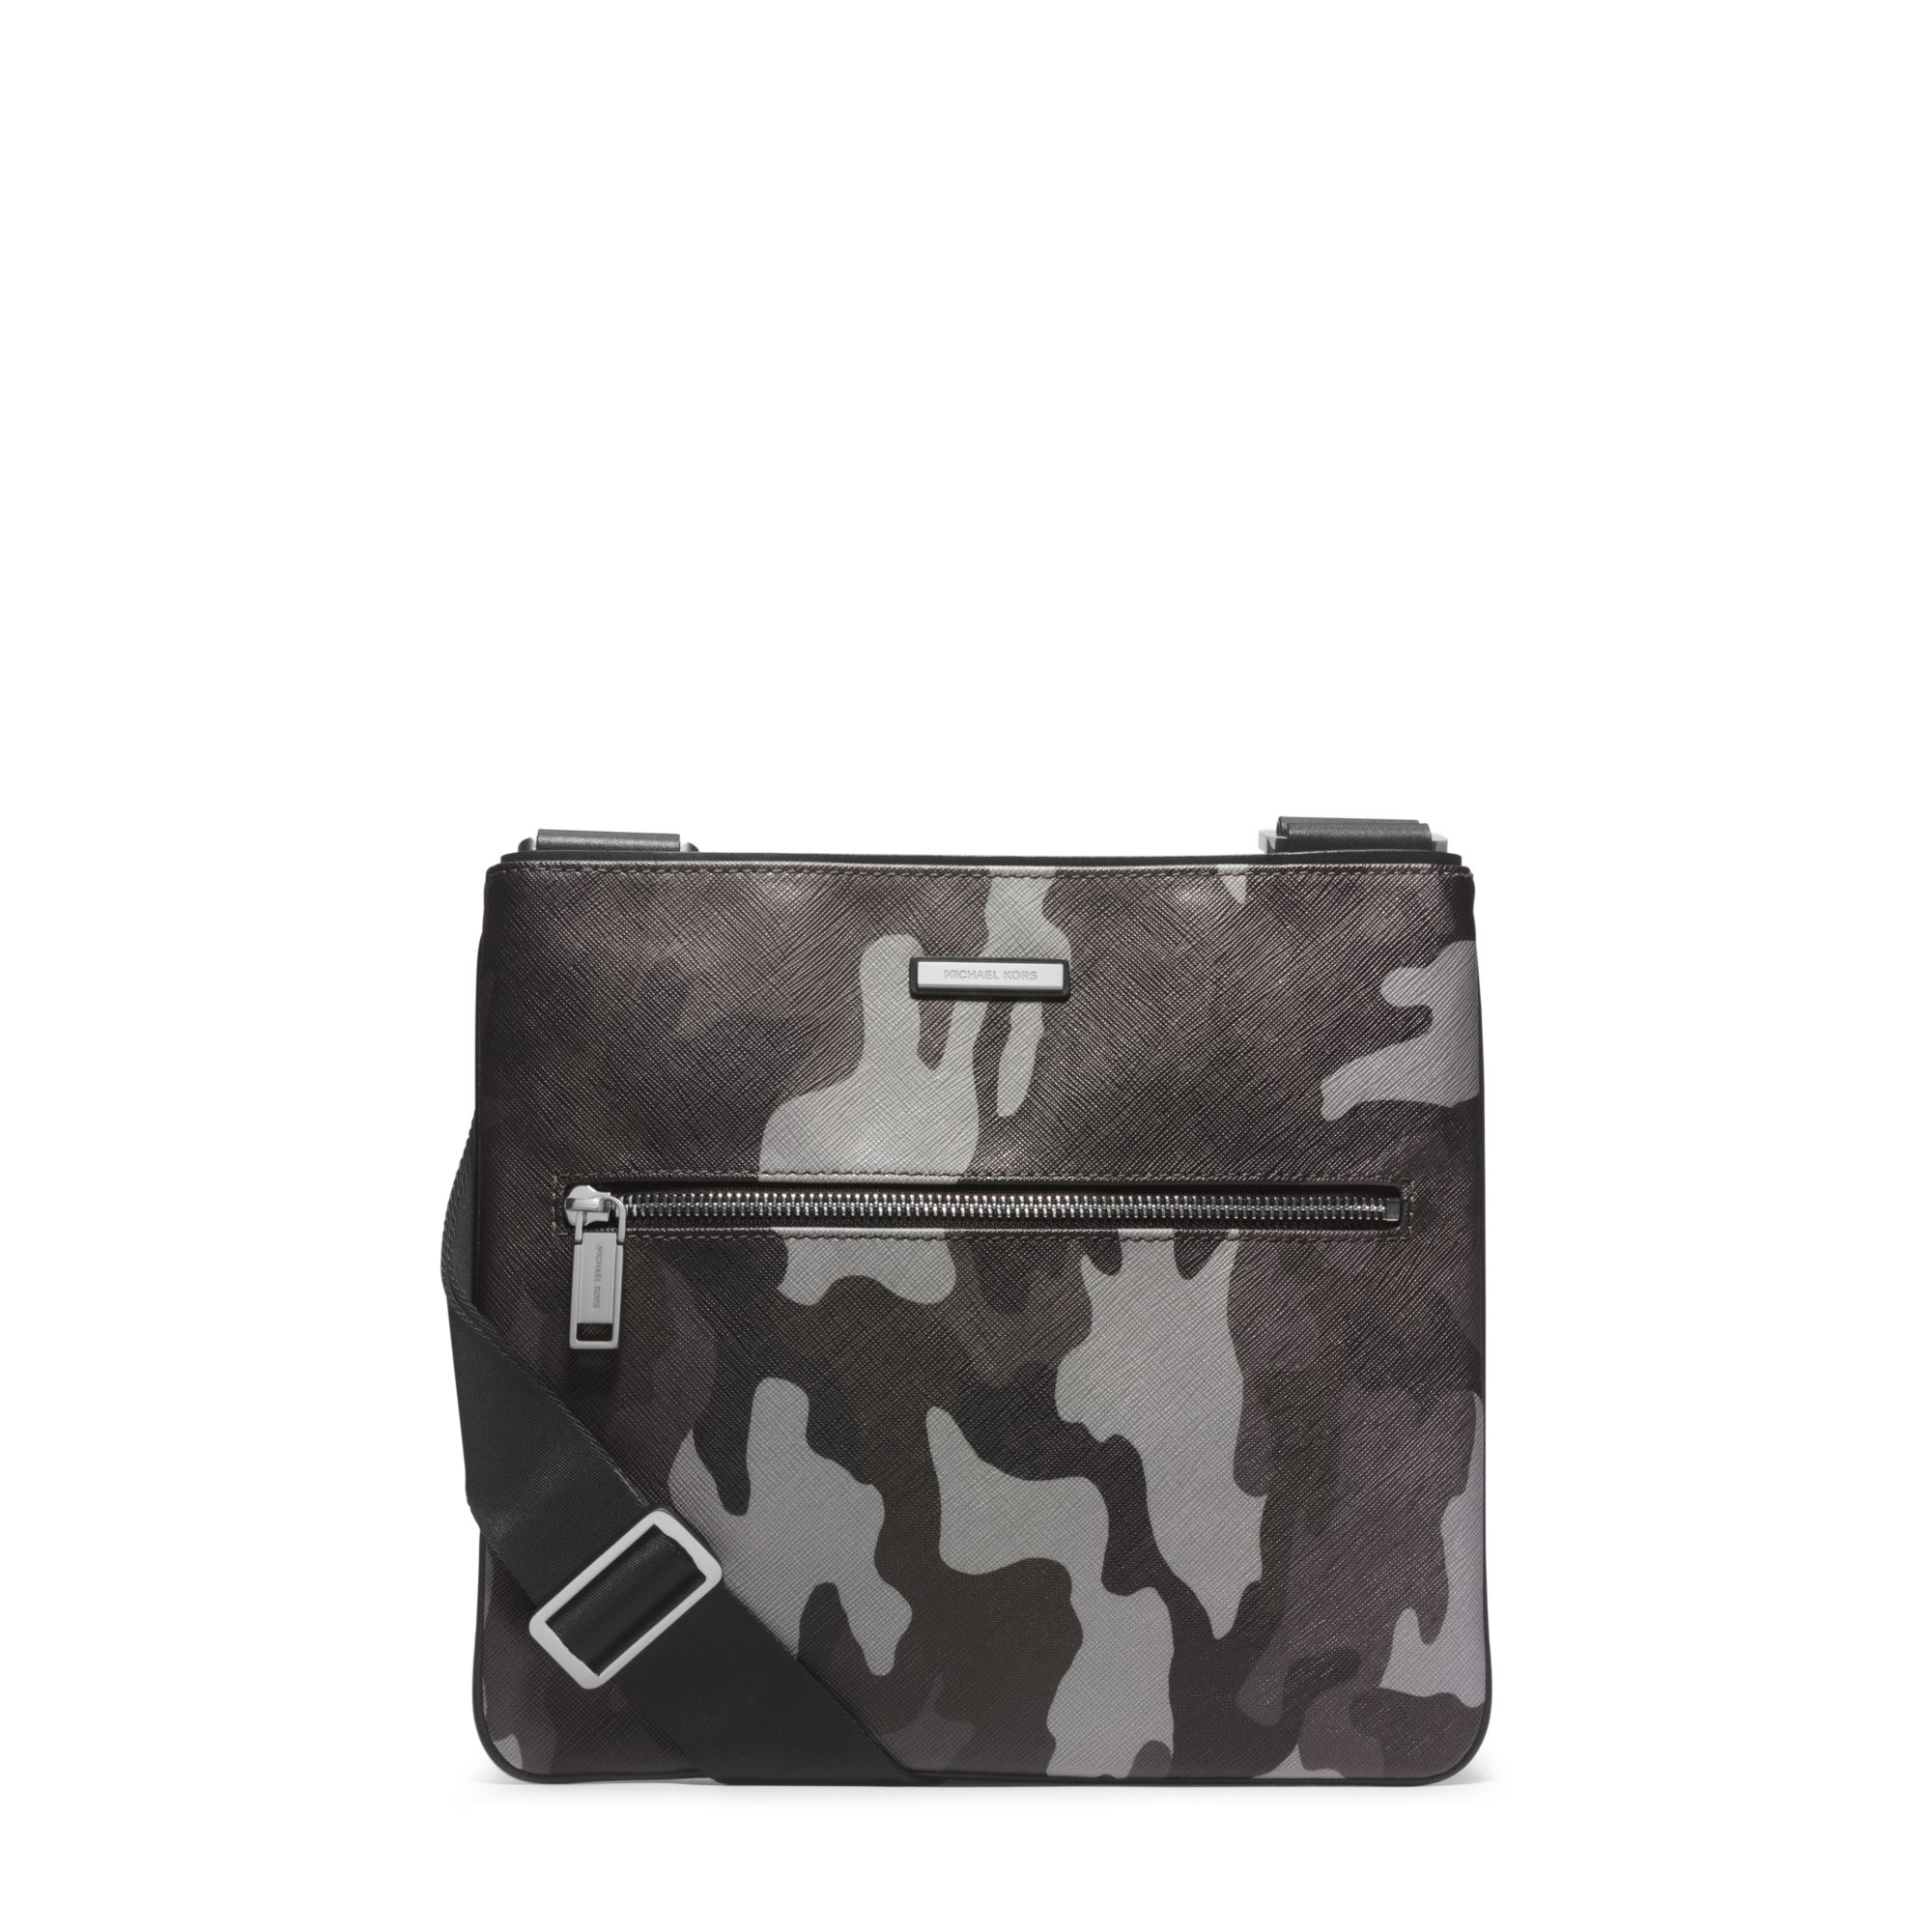 4eafbe4d5446 Lyst - Michael Kors Jet Set Men s Camouflage Small Crossbody in Gray ...